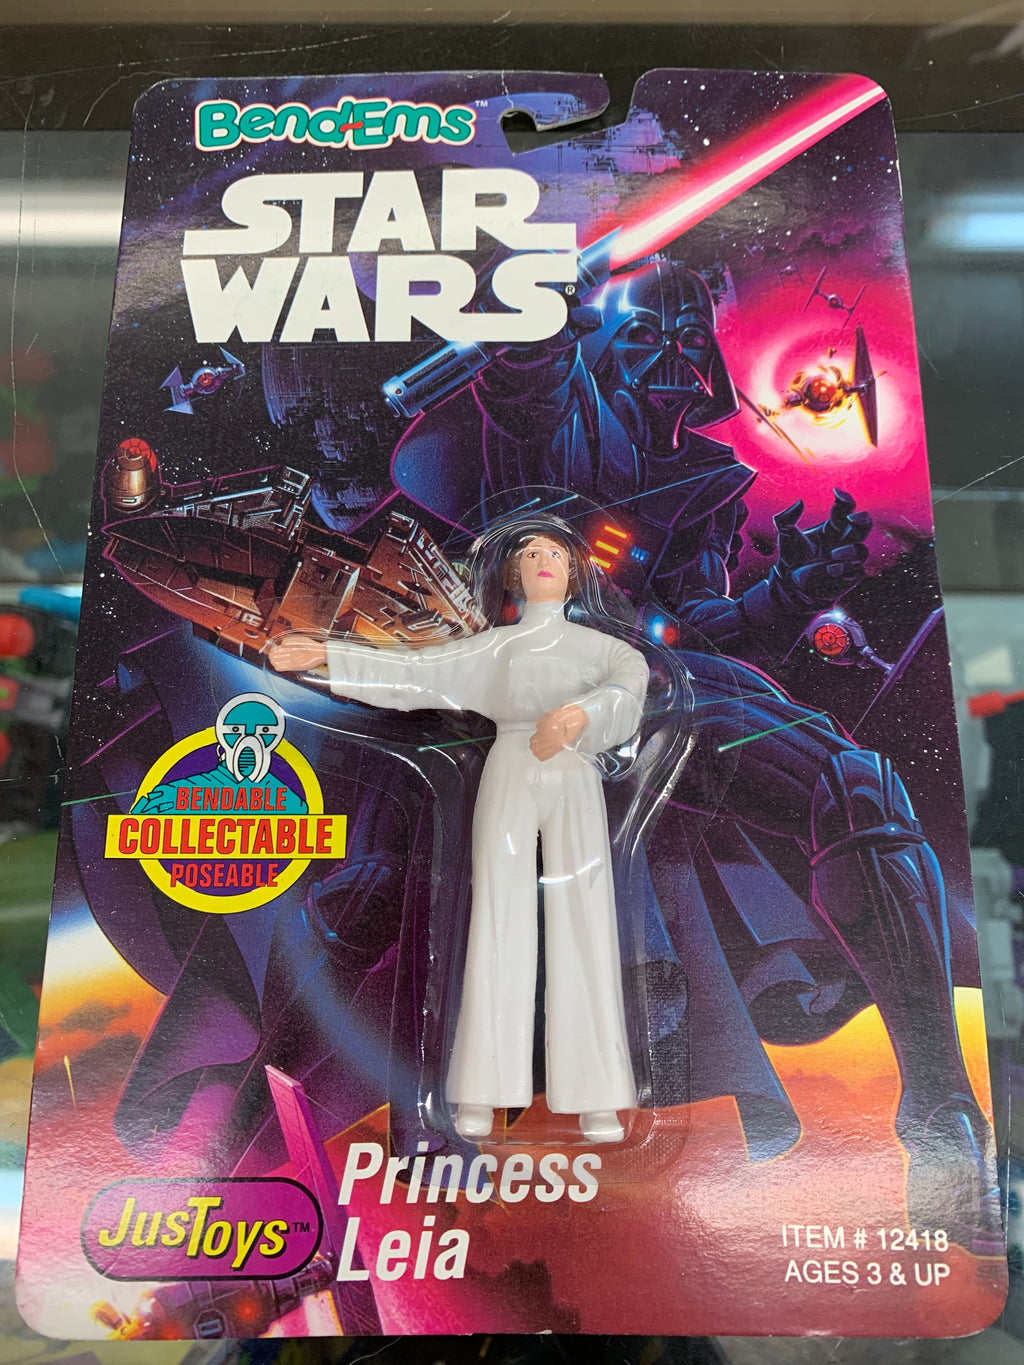 Bend-Ems Dms Star Wars Princess Leia